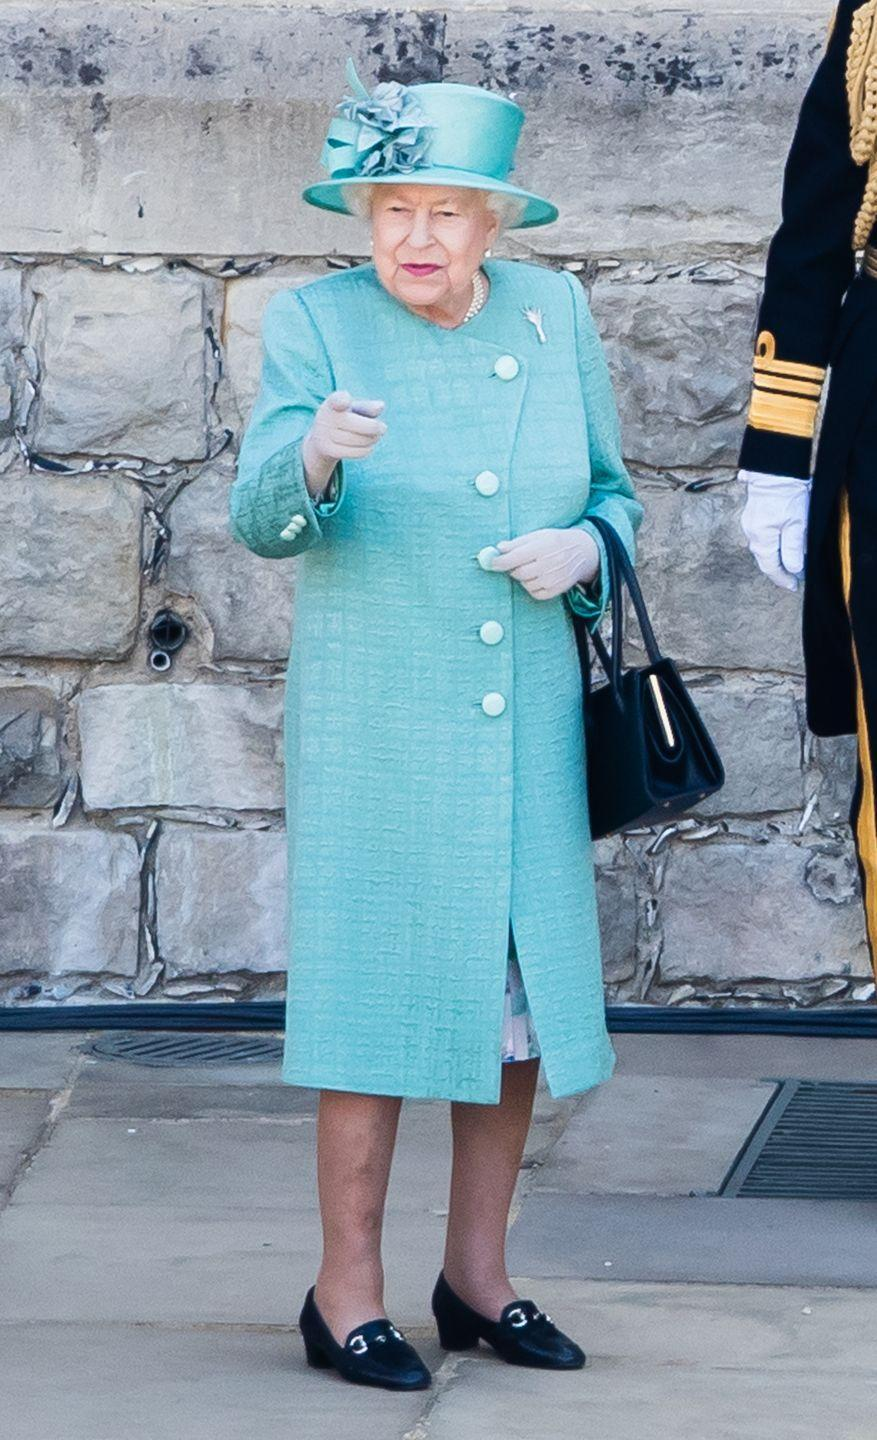 """<p>Queen Elizabeth wore a stunning coat by Stewart Parvin for her birthday celebration. She accessorized the look with a matching hat by Rachel Trevor-Morgan, per <a href=""""https://www.hellomagazine.com/fashion/royal-style/2020061391494/queen-stuns-stewart-parvin-floral-dress-trooping-the-colour/"""" rel=""""nofollow noopener"""" target=""""_blank"""" data-ylk=""""slk:Hello!"""" class=""""link rapid-noclick-resp""""><em>Hello!</em></a>.</p>"""